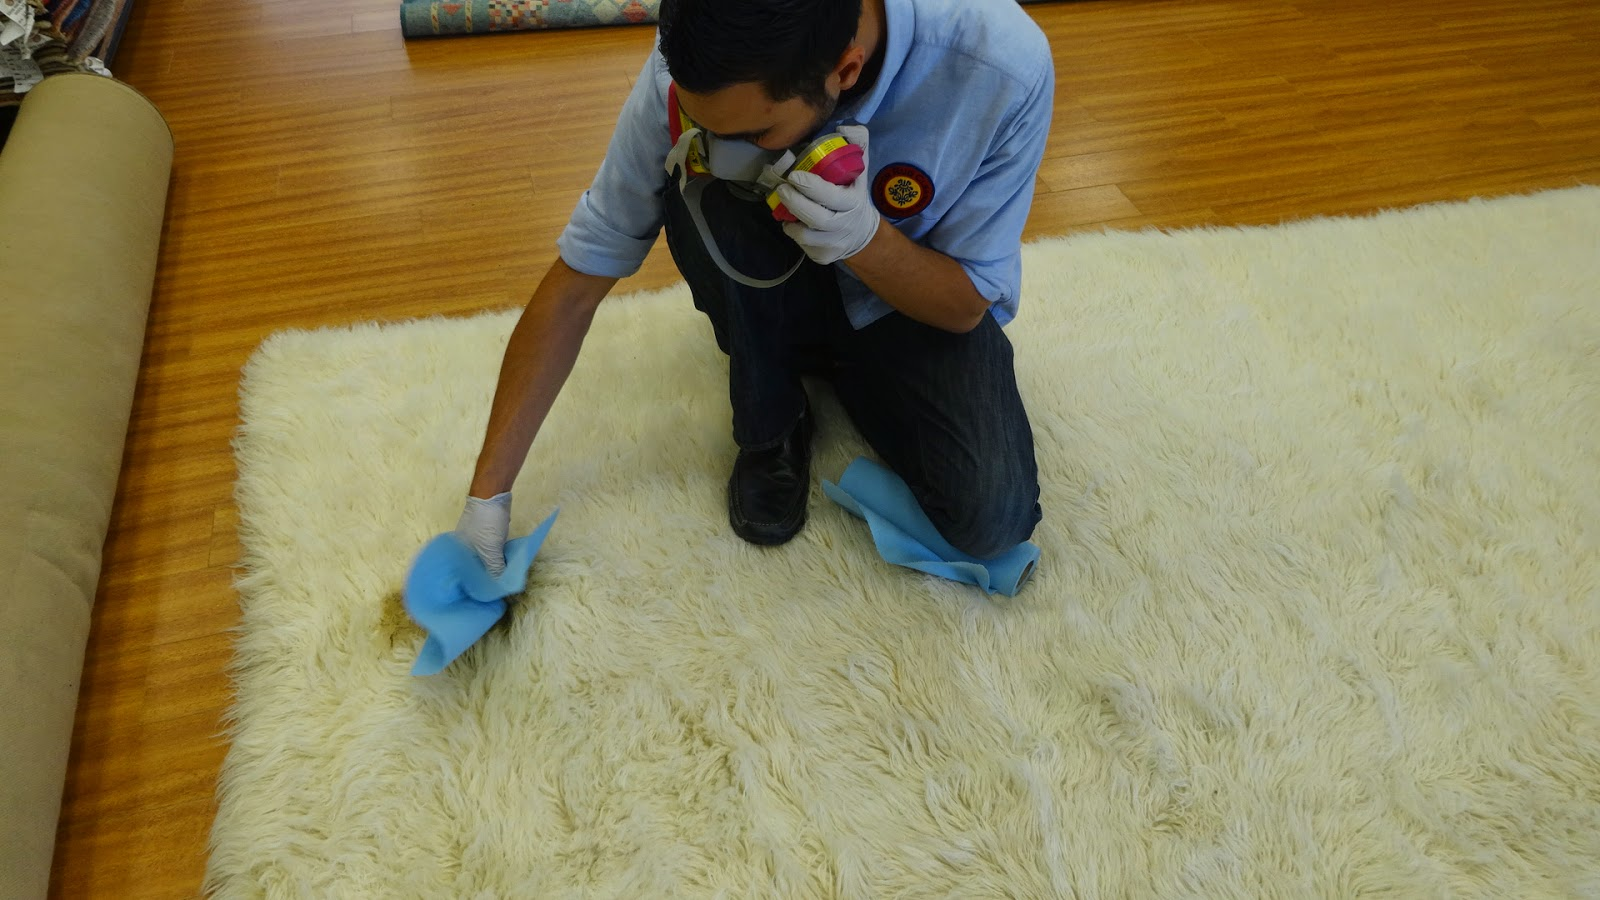 How to clean a flokati rug - Flokati Rugs Need A Little More Care And Maintenance Specially If You Have Pets They Get Dirty Very Easily And Their Cleaning Is Not Something You Can Take